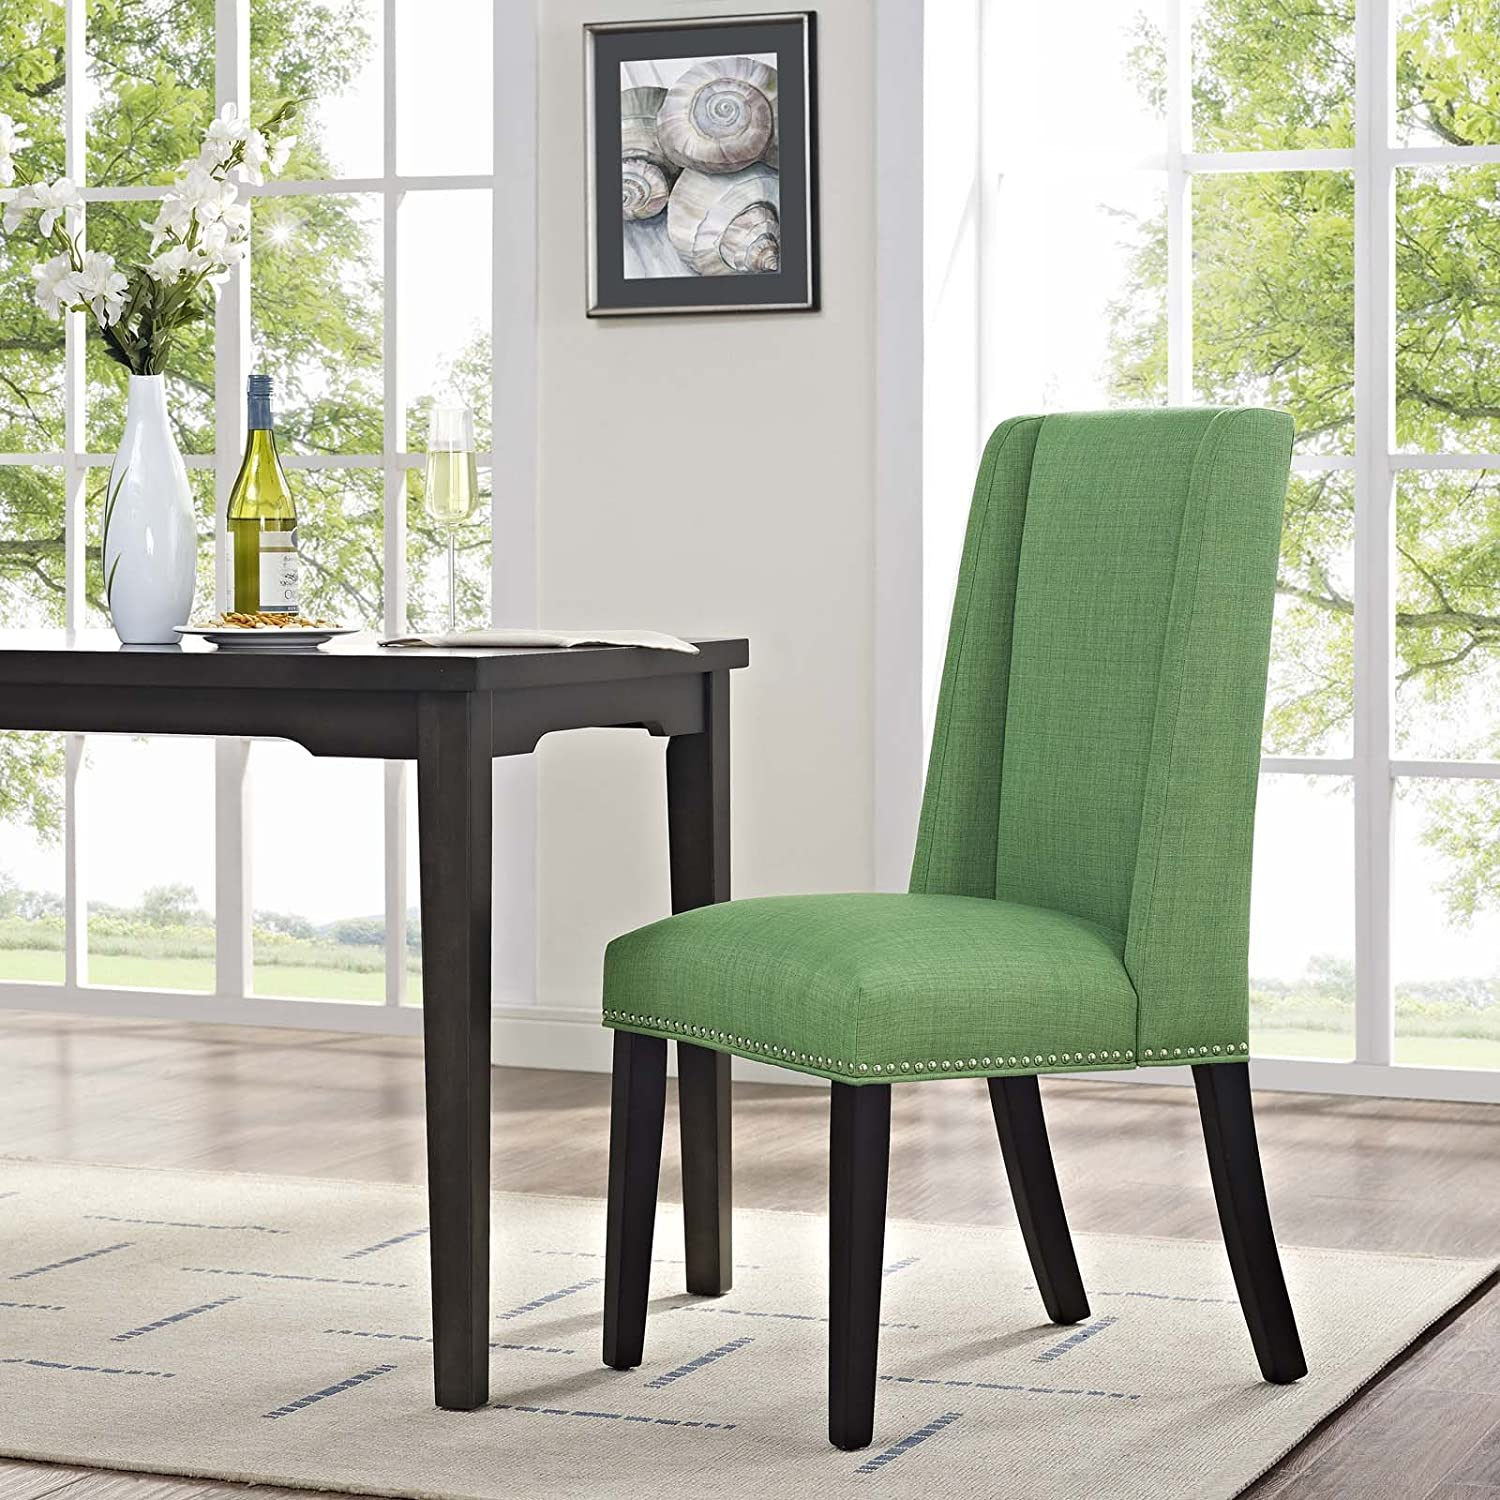 Modway Baron Modern Tall Back Wood Upholstered Fabric Parsons Kitchen and Dining Room Chair with Nailhead Trim in Kelly Green